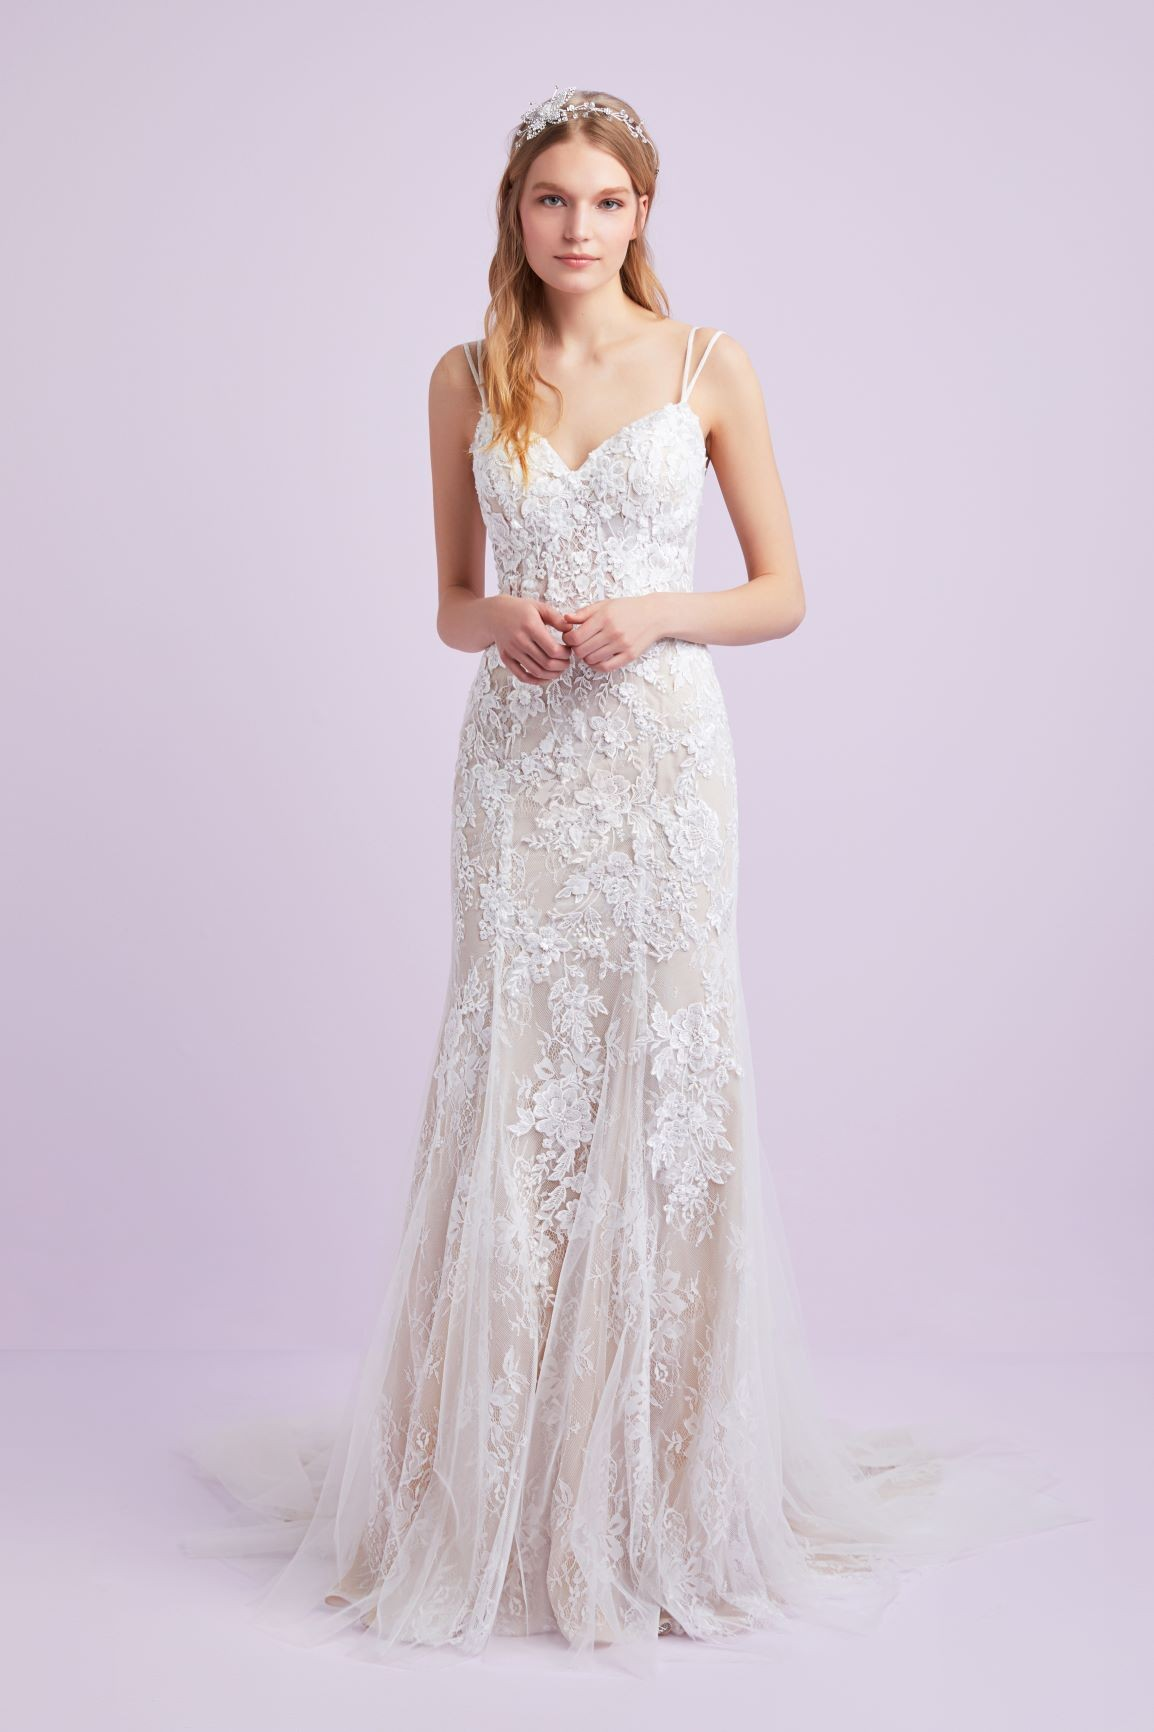 Lace and champagne fitted gown